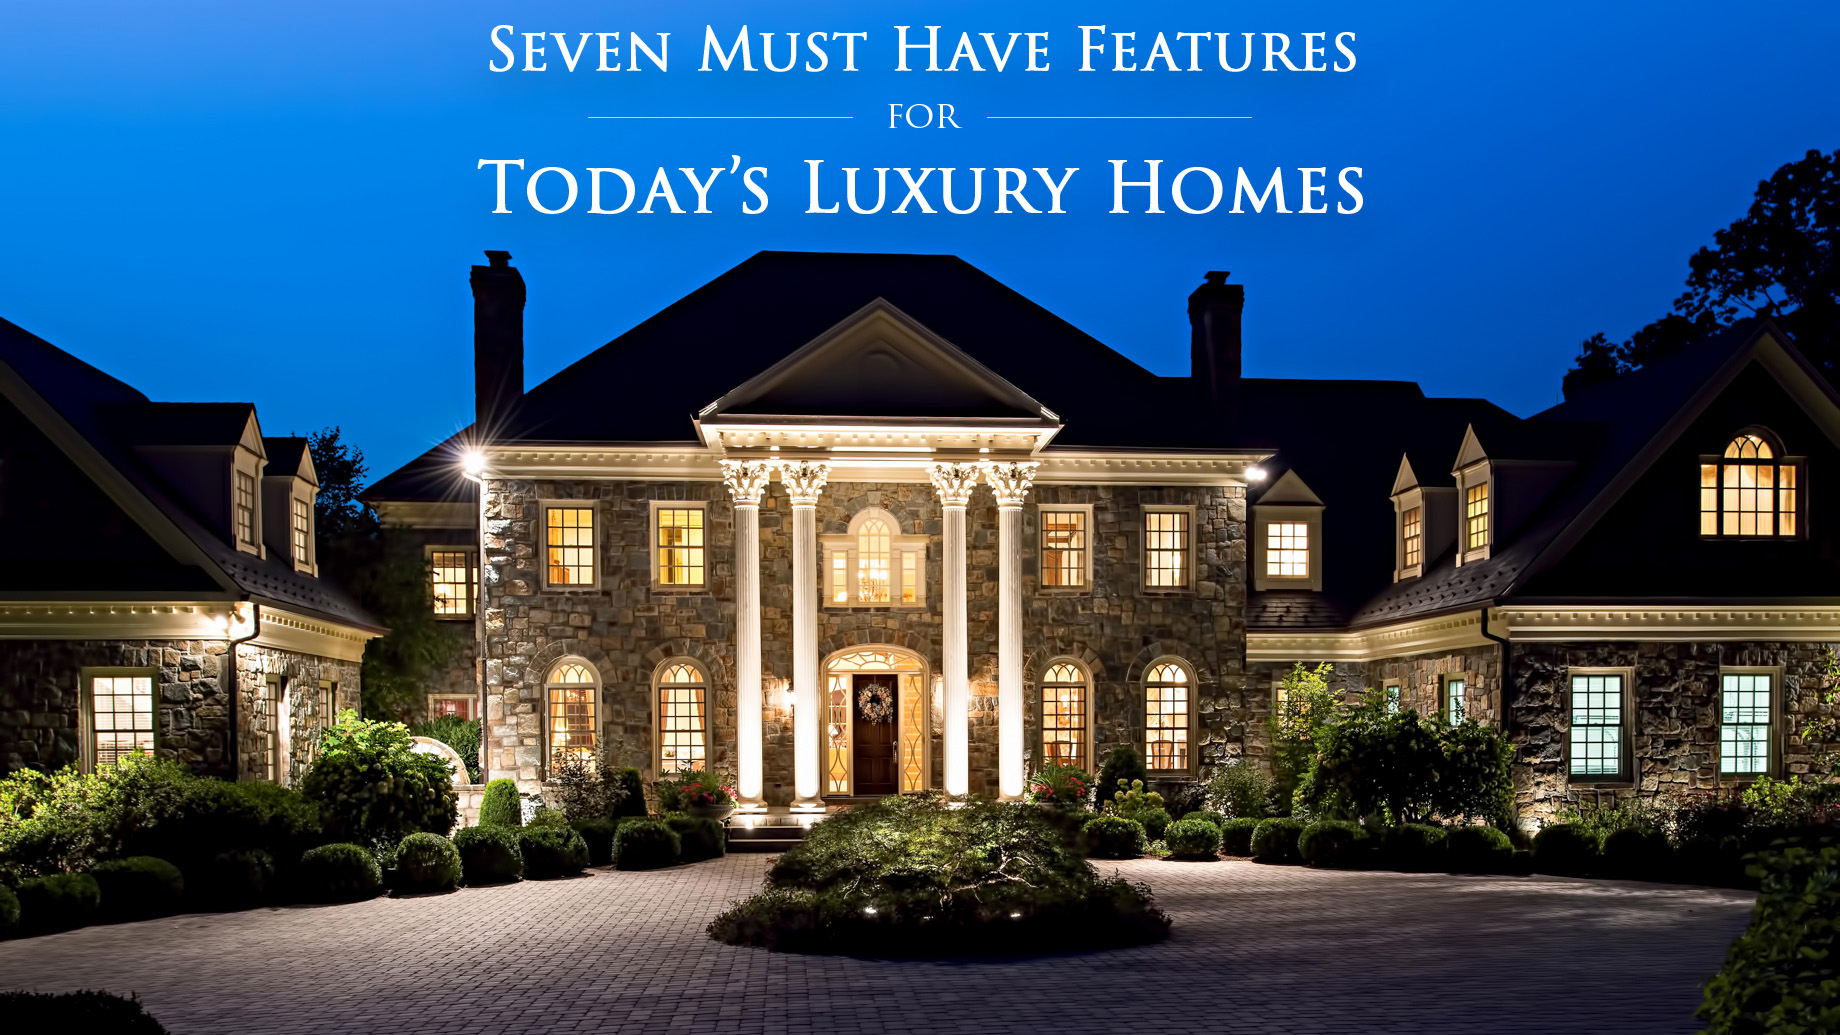 Seven Must Have Features for Today's Luxury Homes